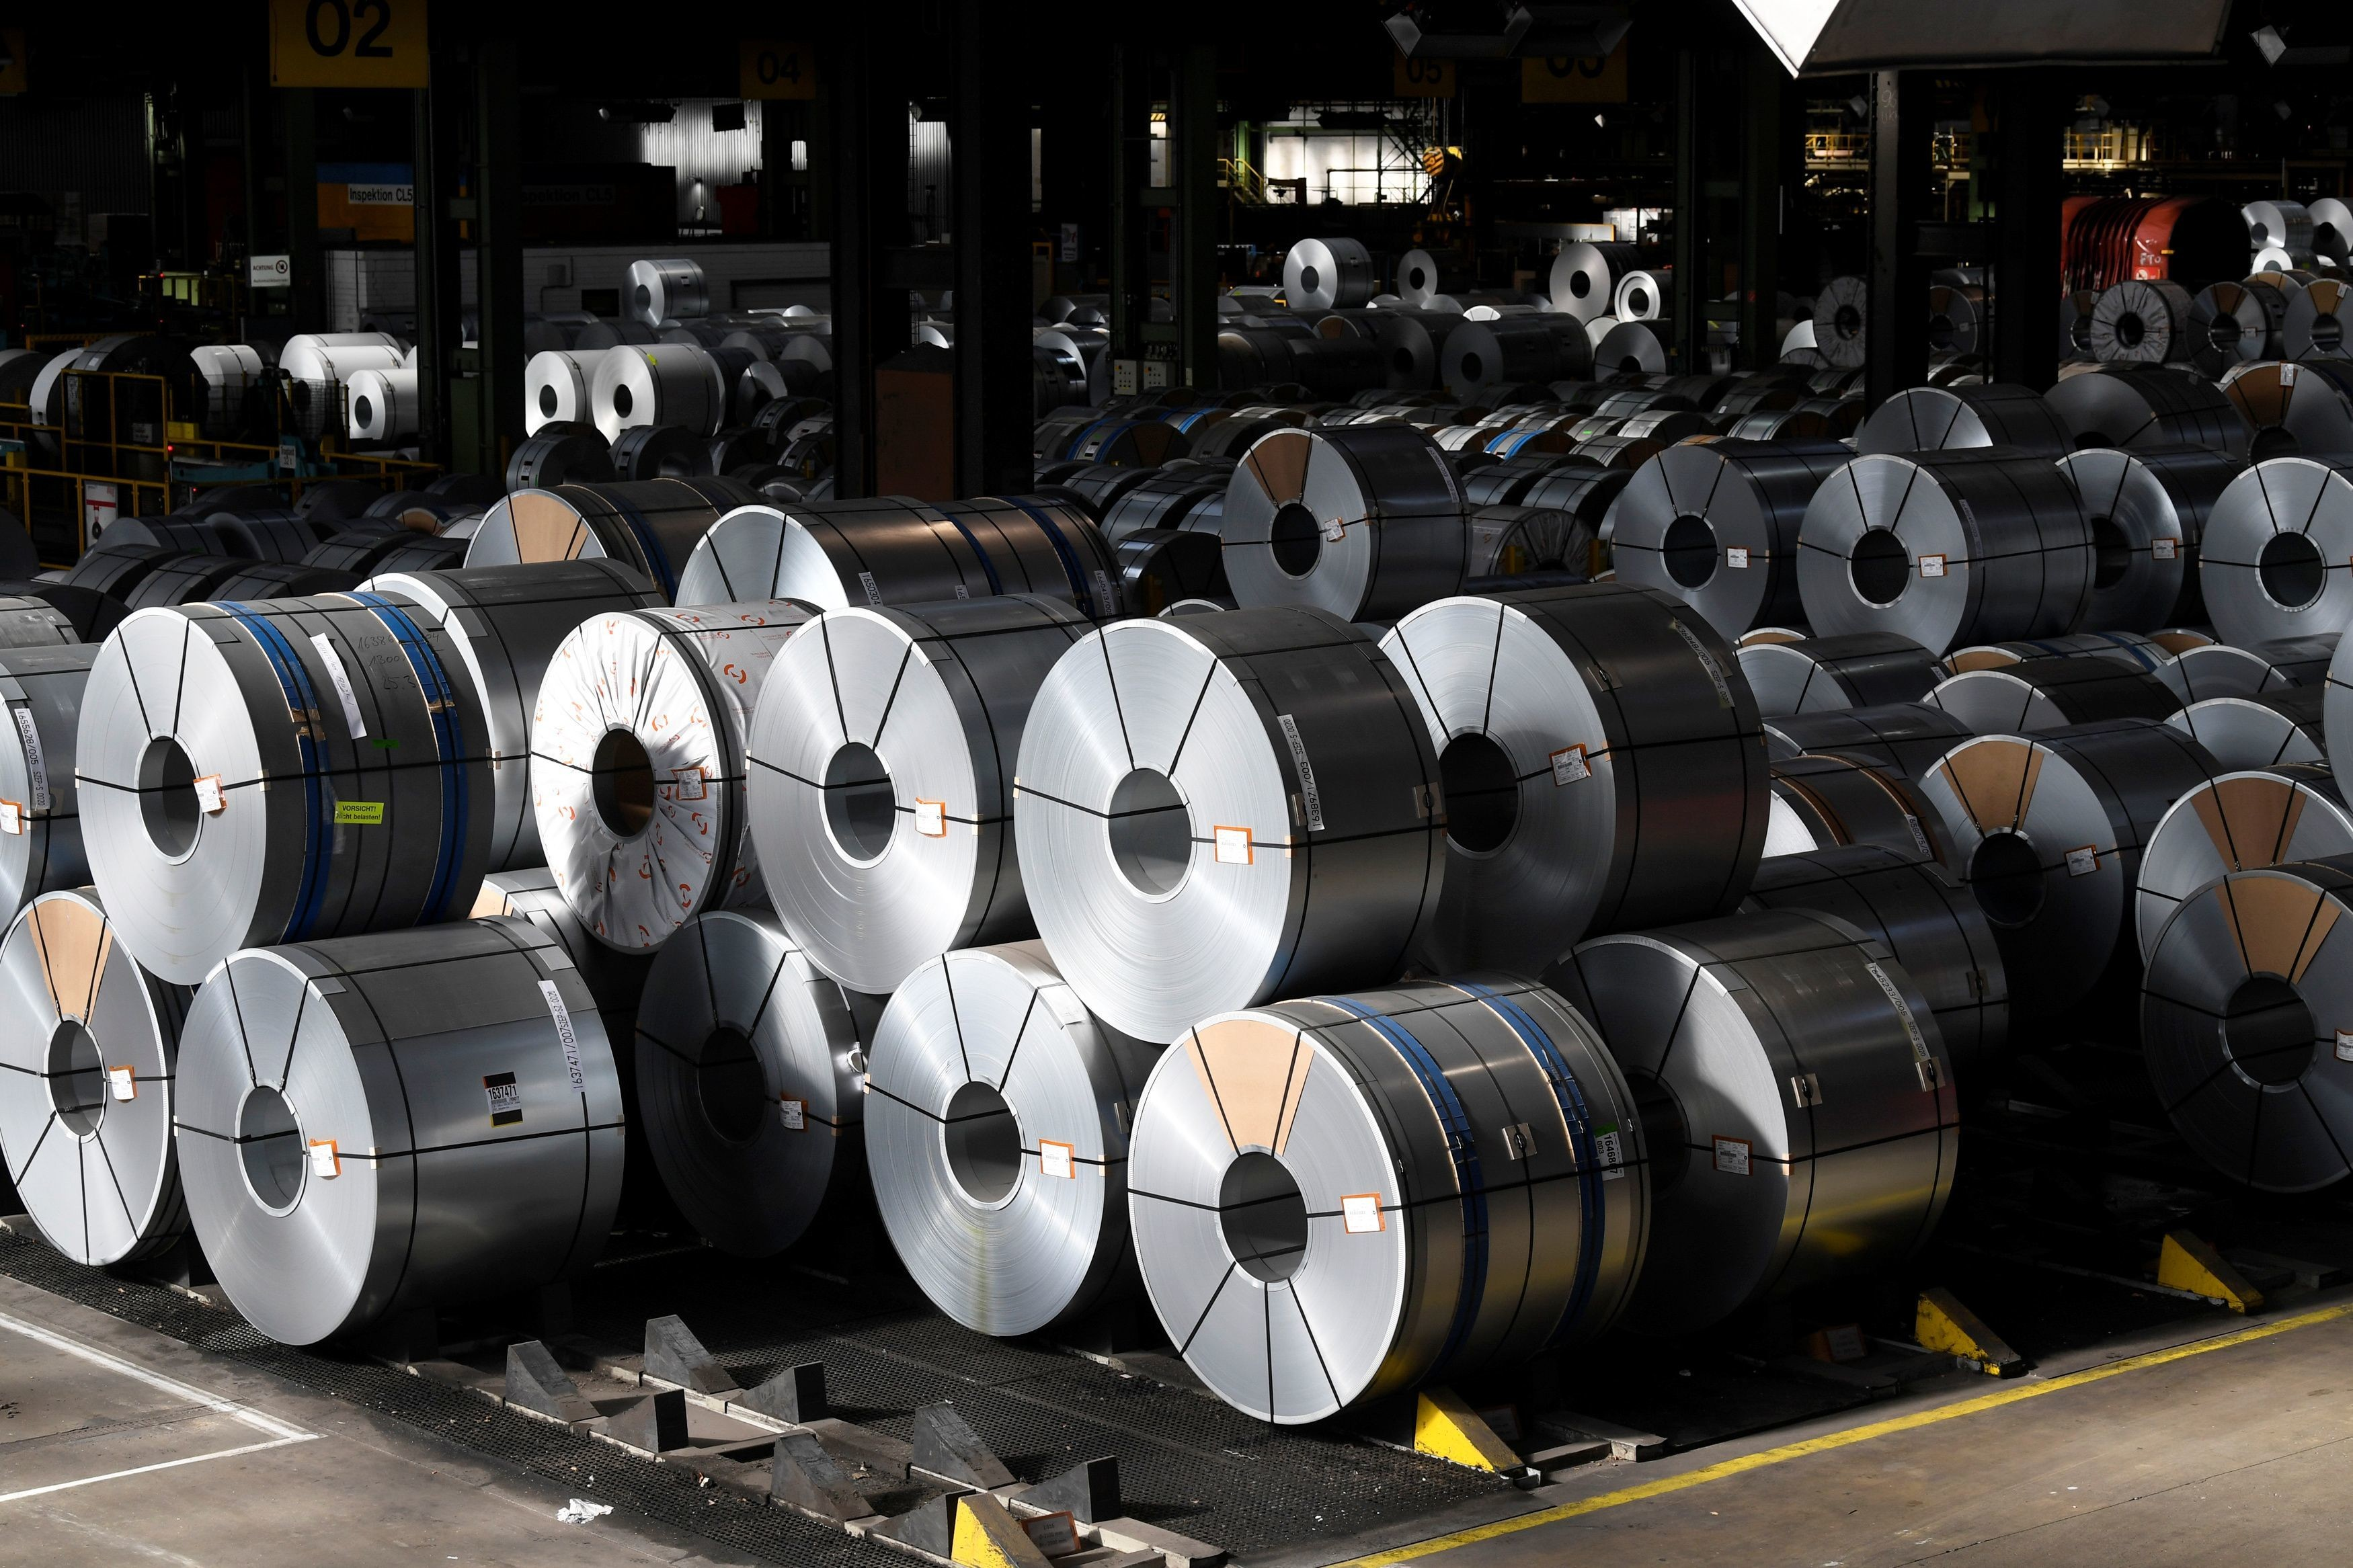 Steel rolls are pictured at the plant of German steel company Salzgitter AG in Salzgitter, Germany March 2, 2020. REUTERS/Fabian Bimmer - RC2QBF9NO8ZI